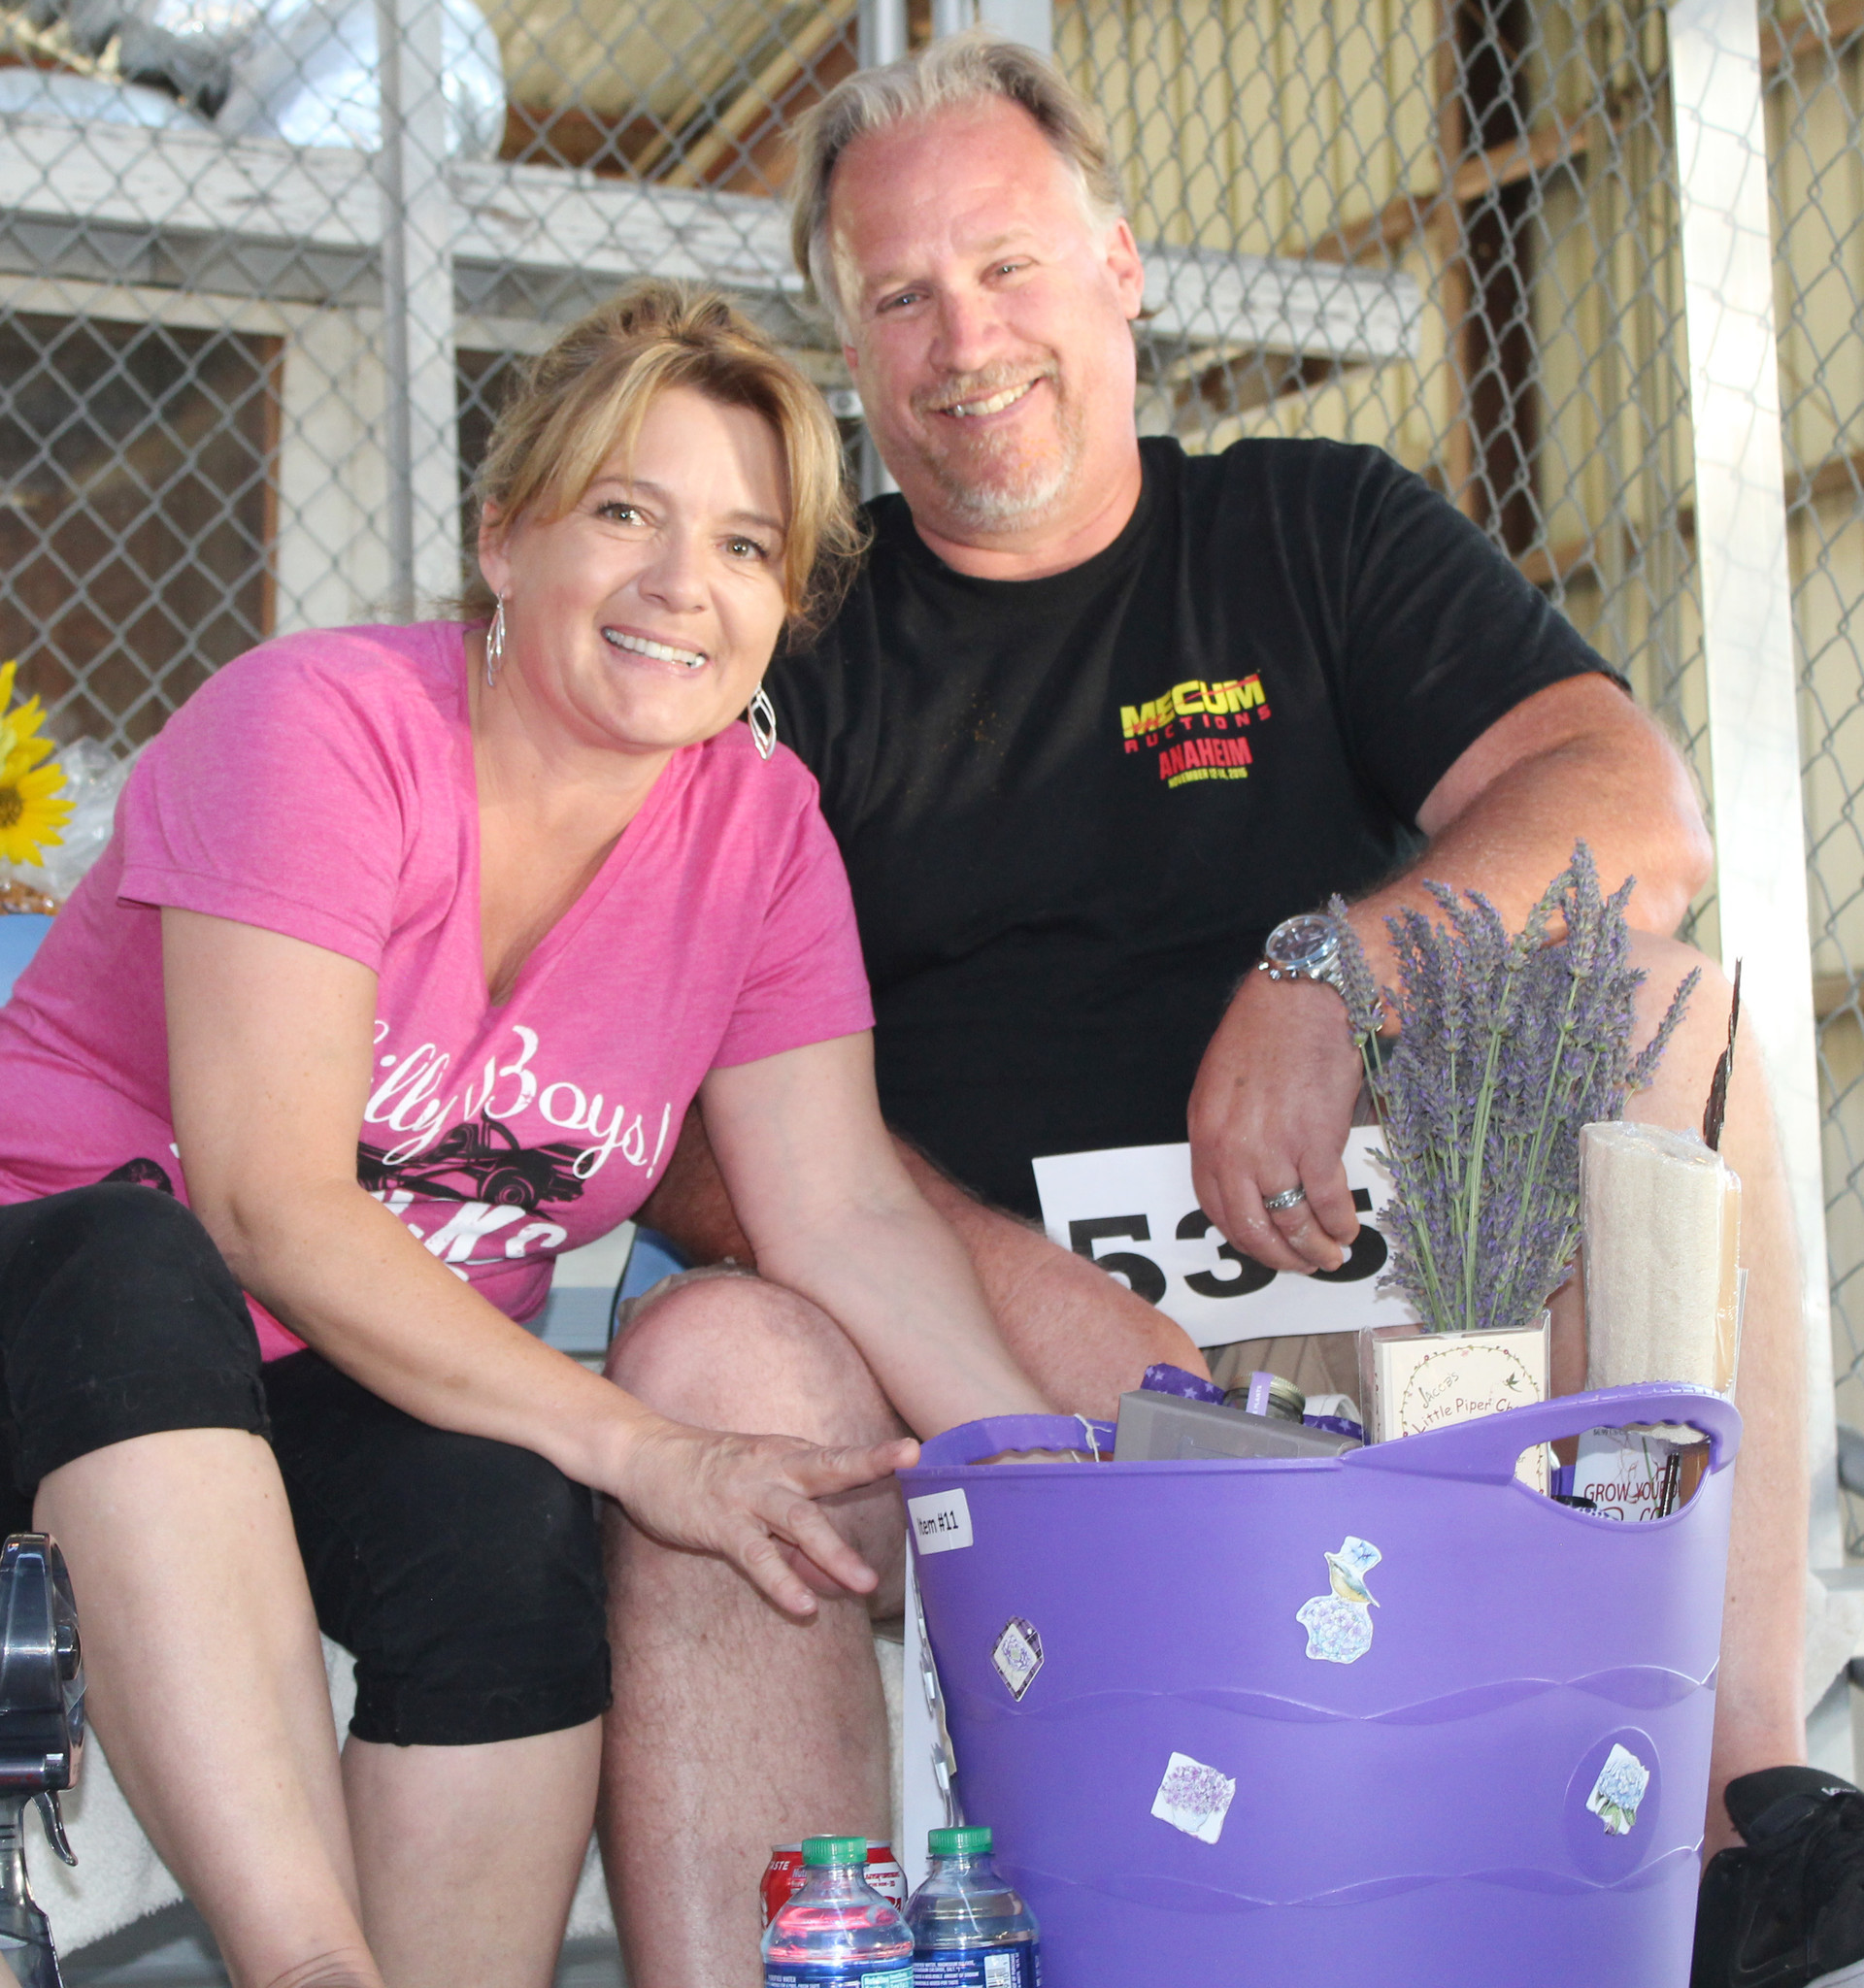 Sheila and Rich Swafford bid $590 for Ramona Stars 4-H's Lavender Basket.